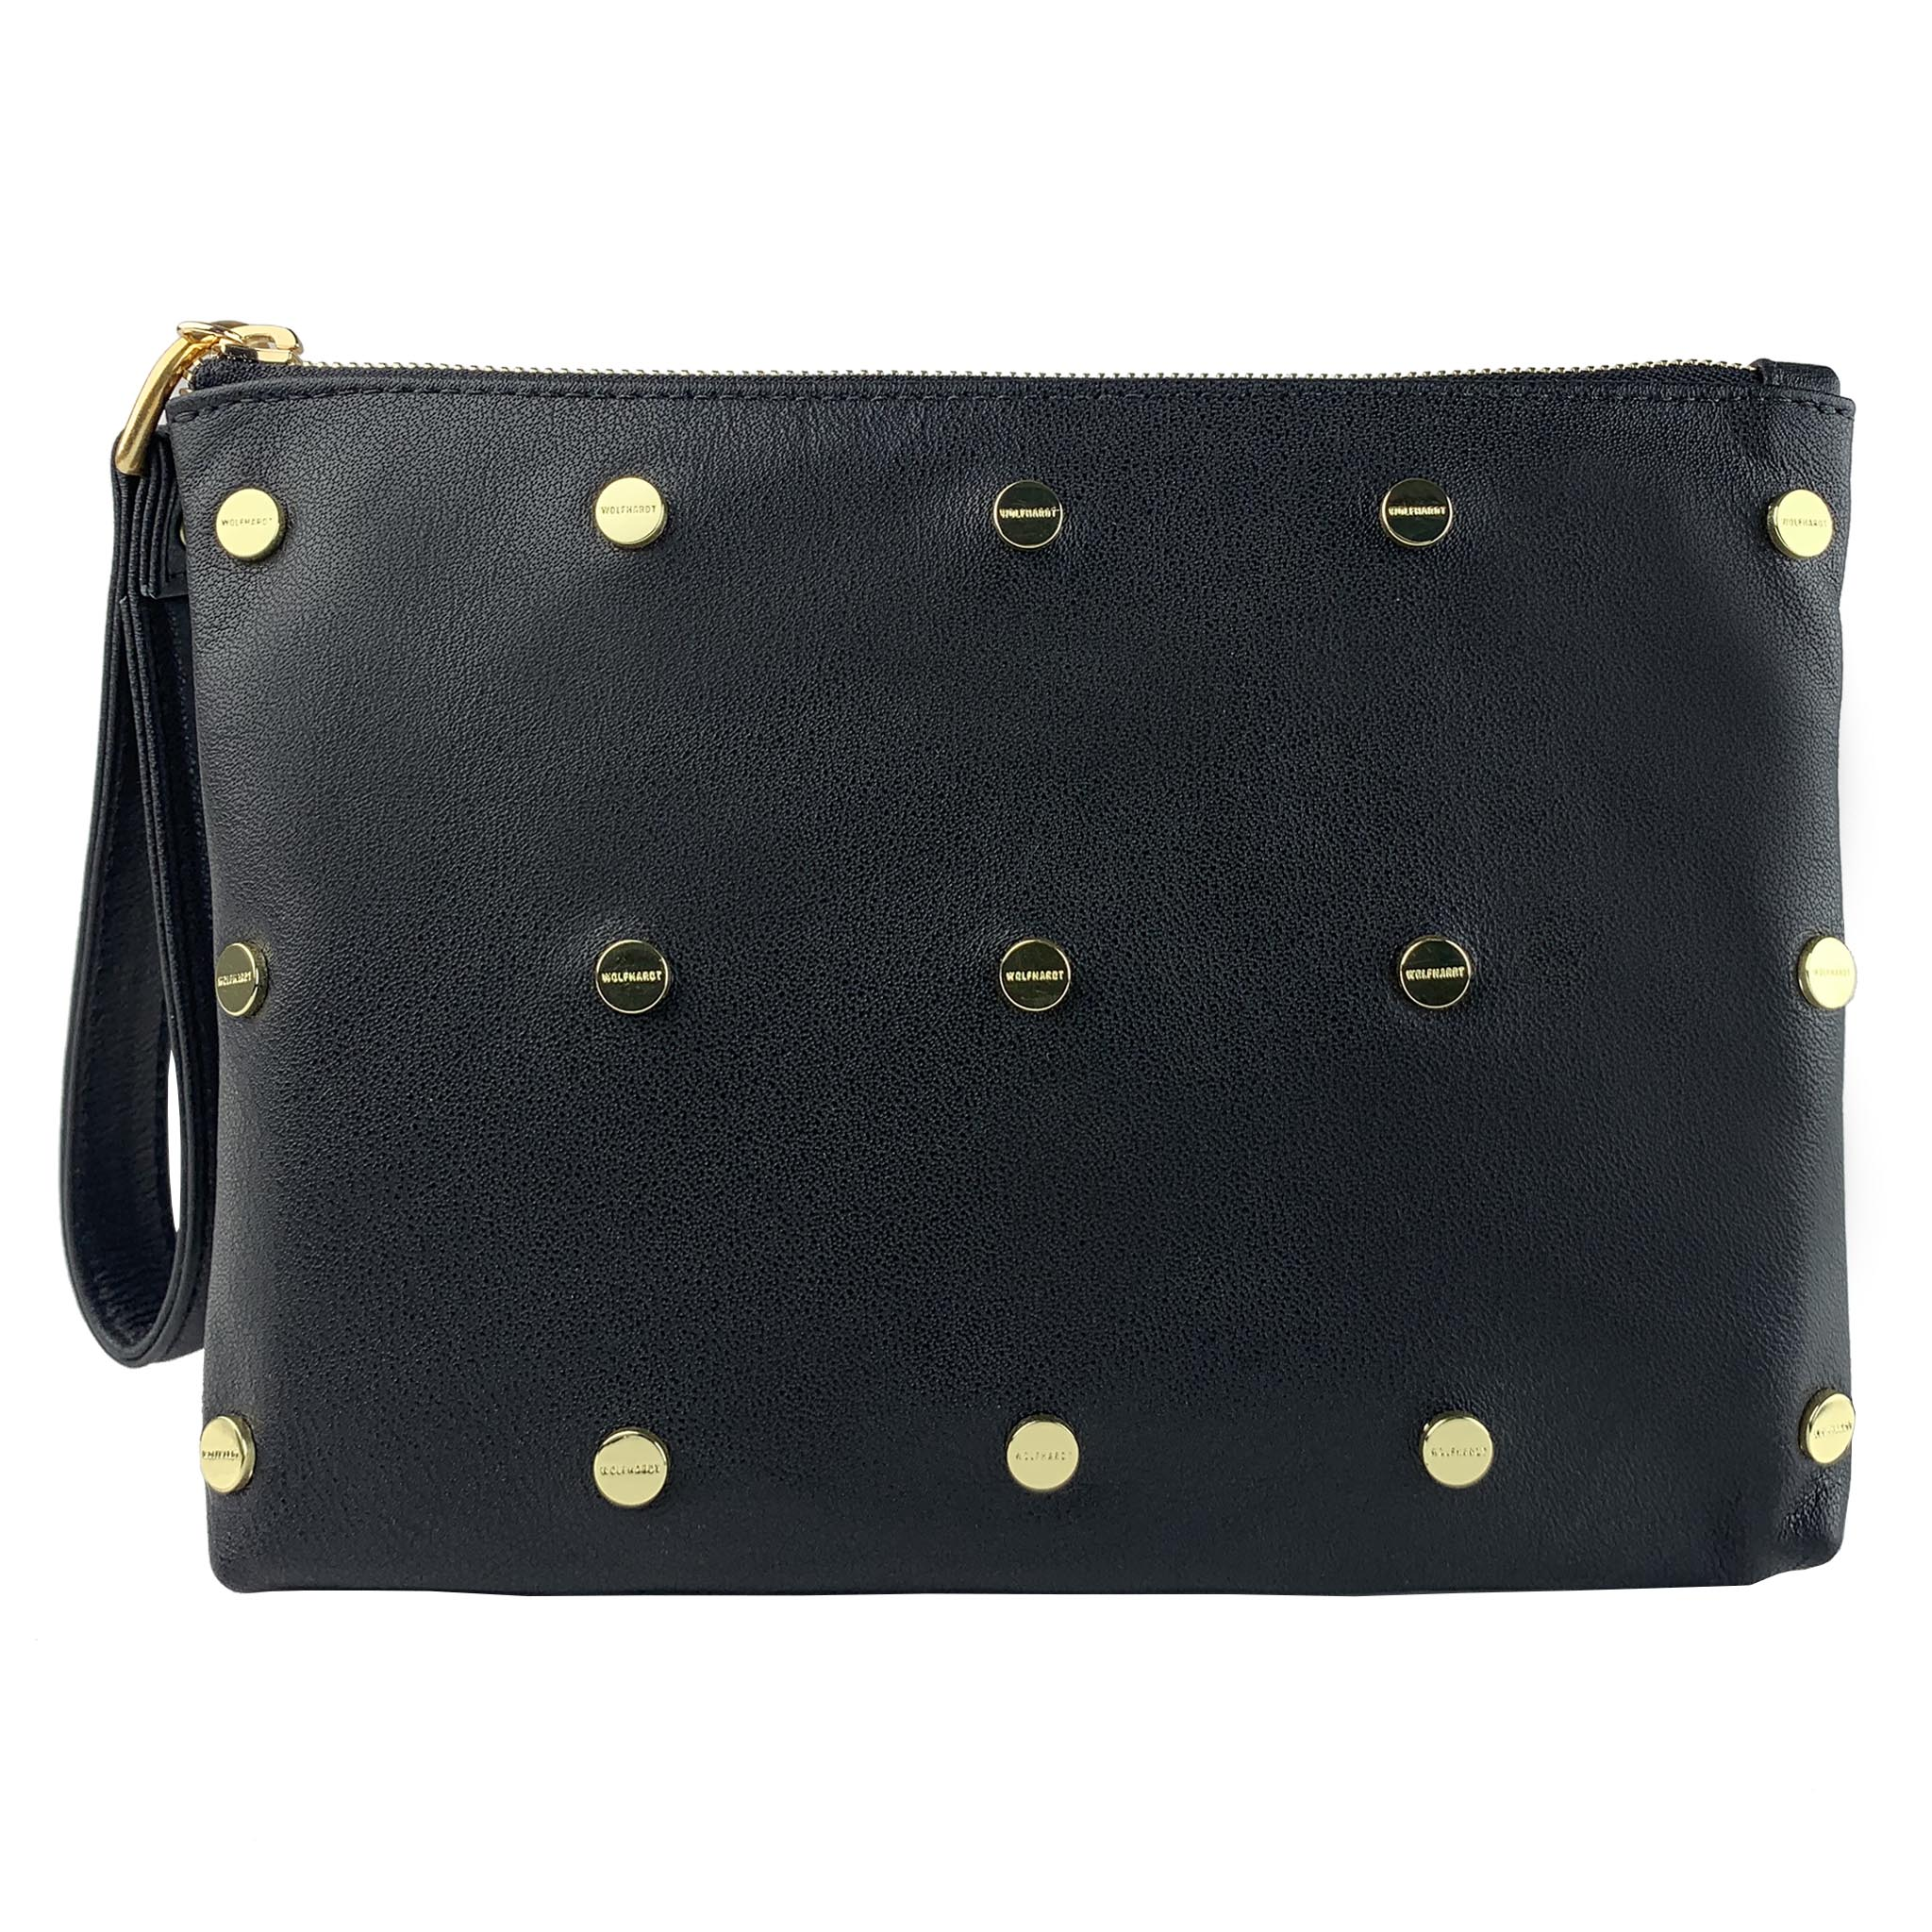 BLACK LEATHER WOMEN'S STUDDED BEUTAL FLAT ZIP POUCH